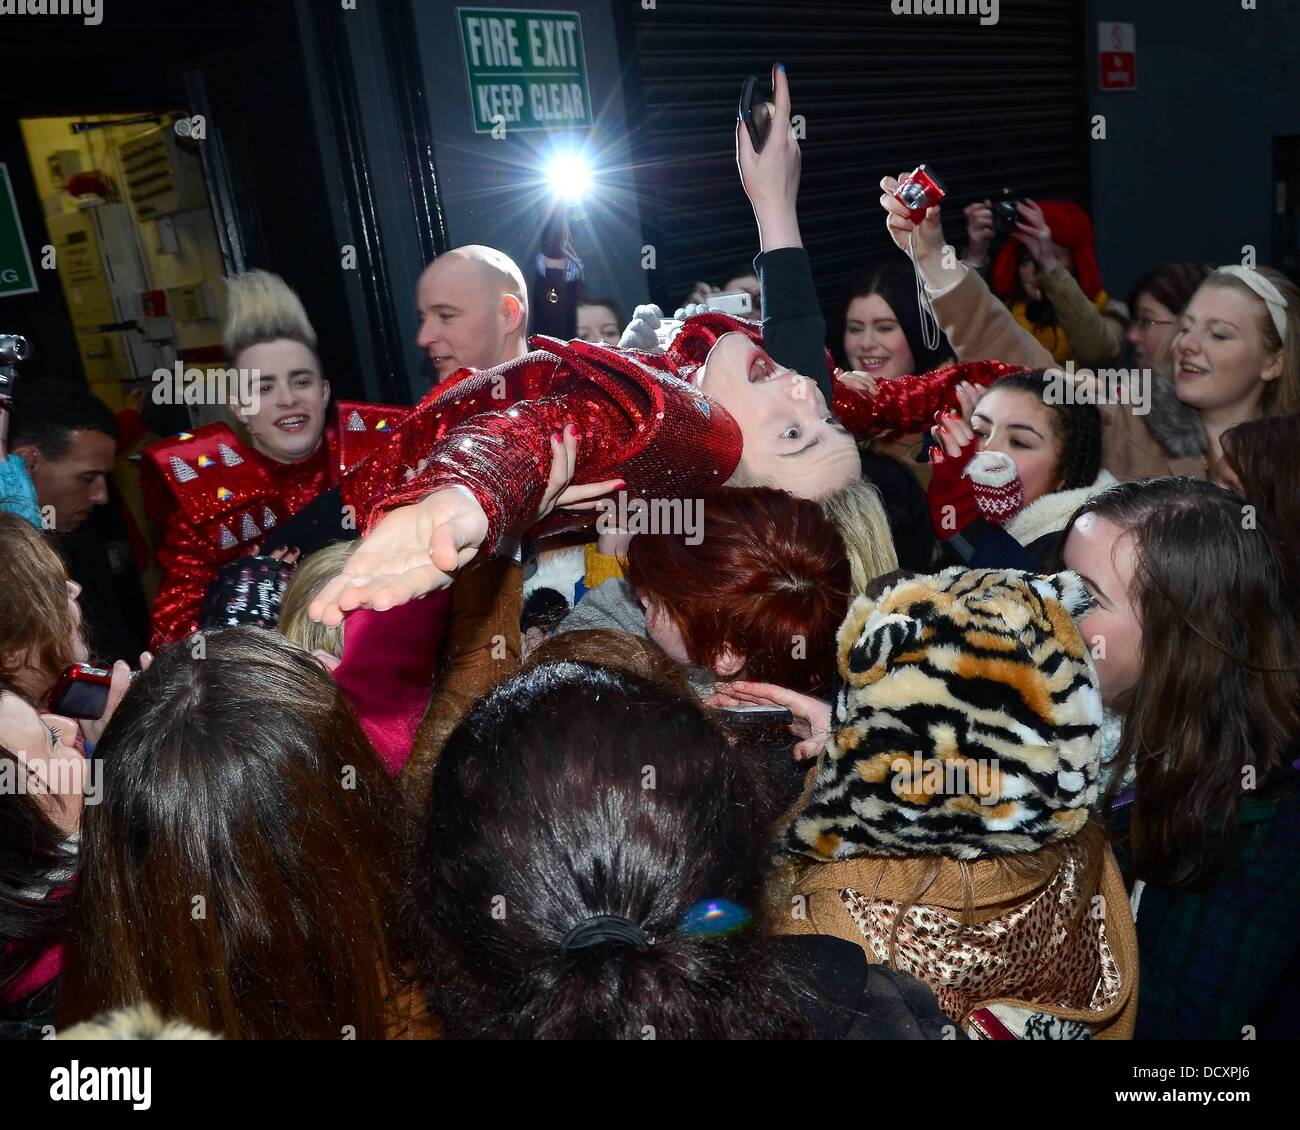 Jedward invent a new craze of crowd surfing on the hundreds teenage girls that wait for them outside the Stage Door - Stock Image